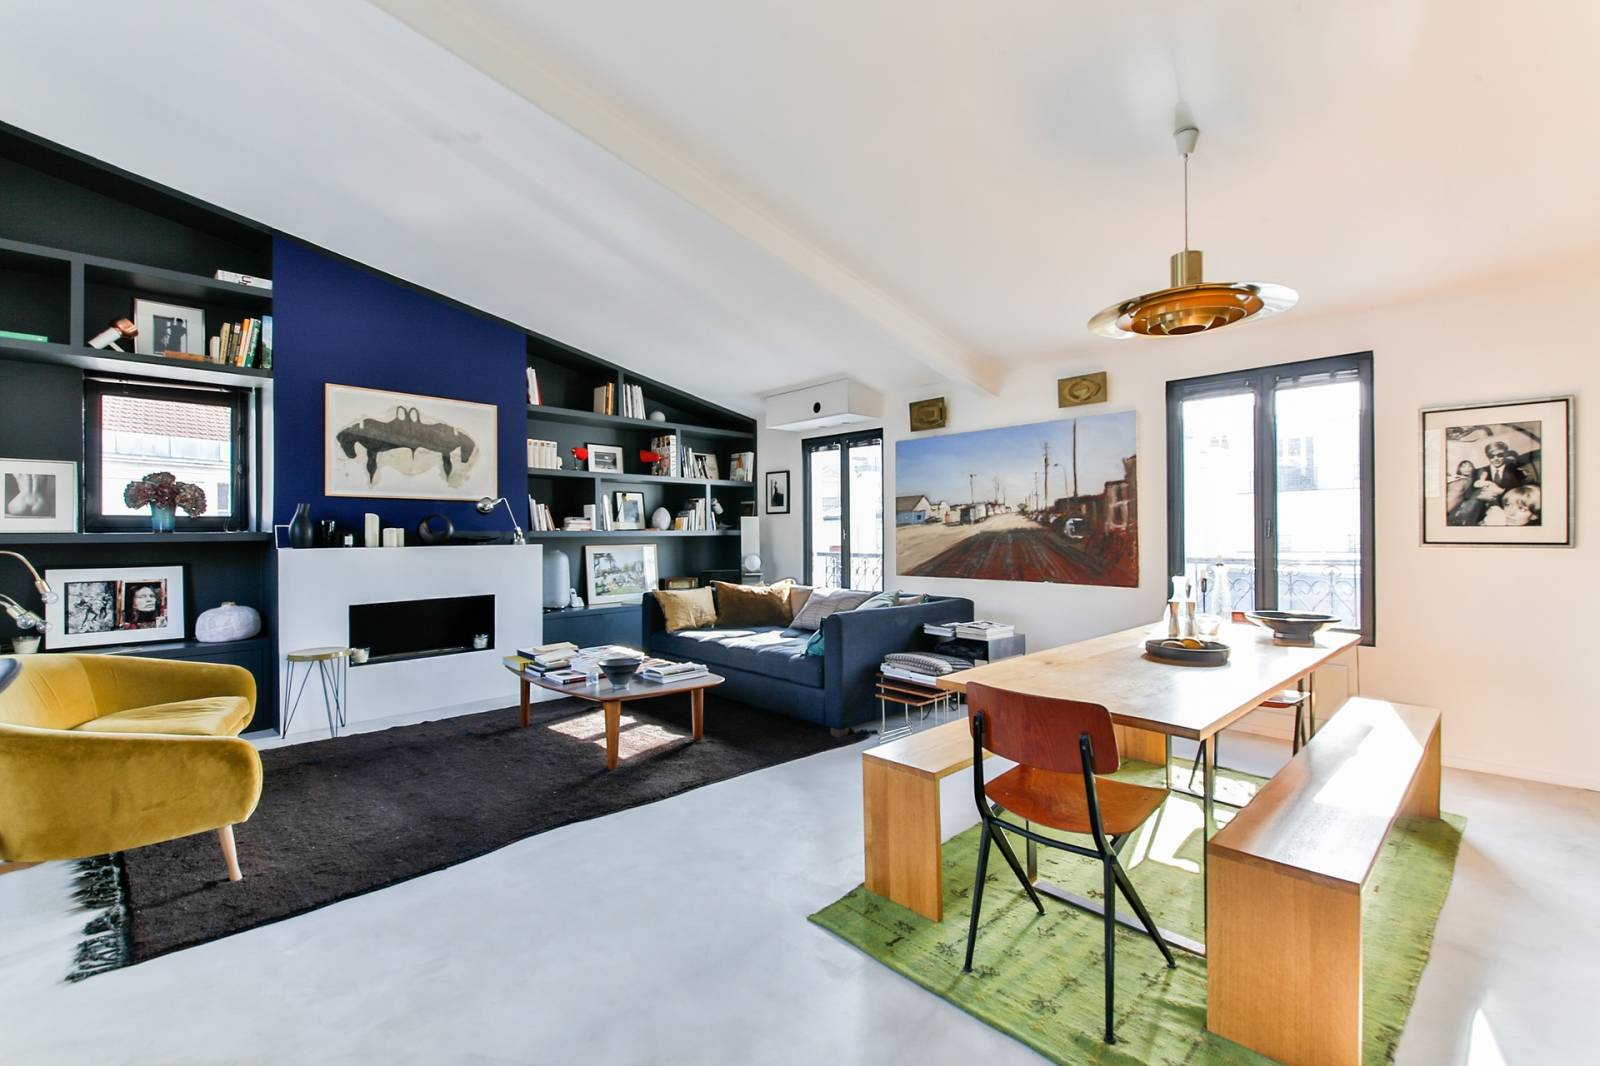 rnovation dappartement par un architecte dintrieur marseille